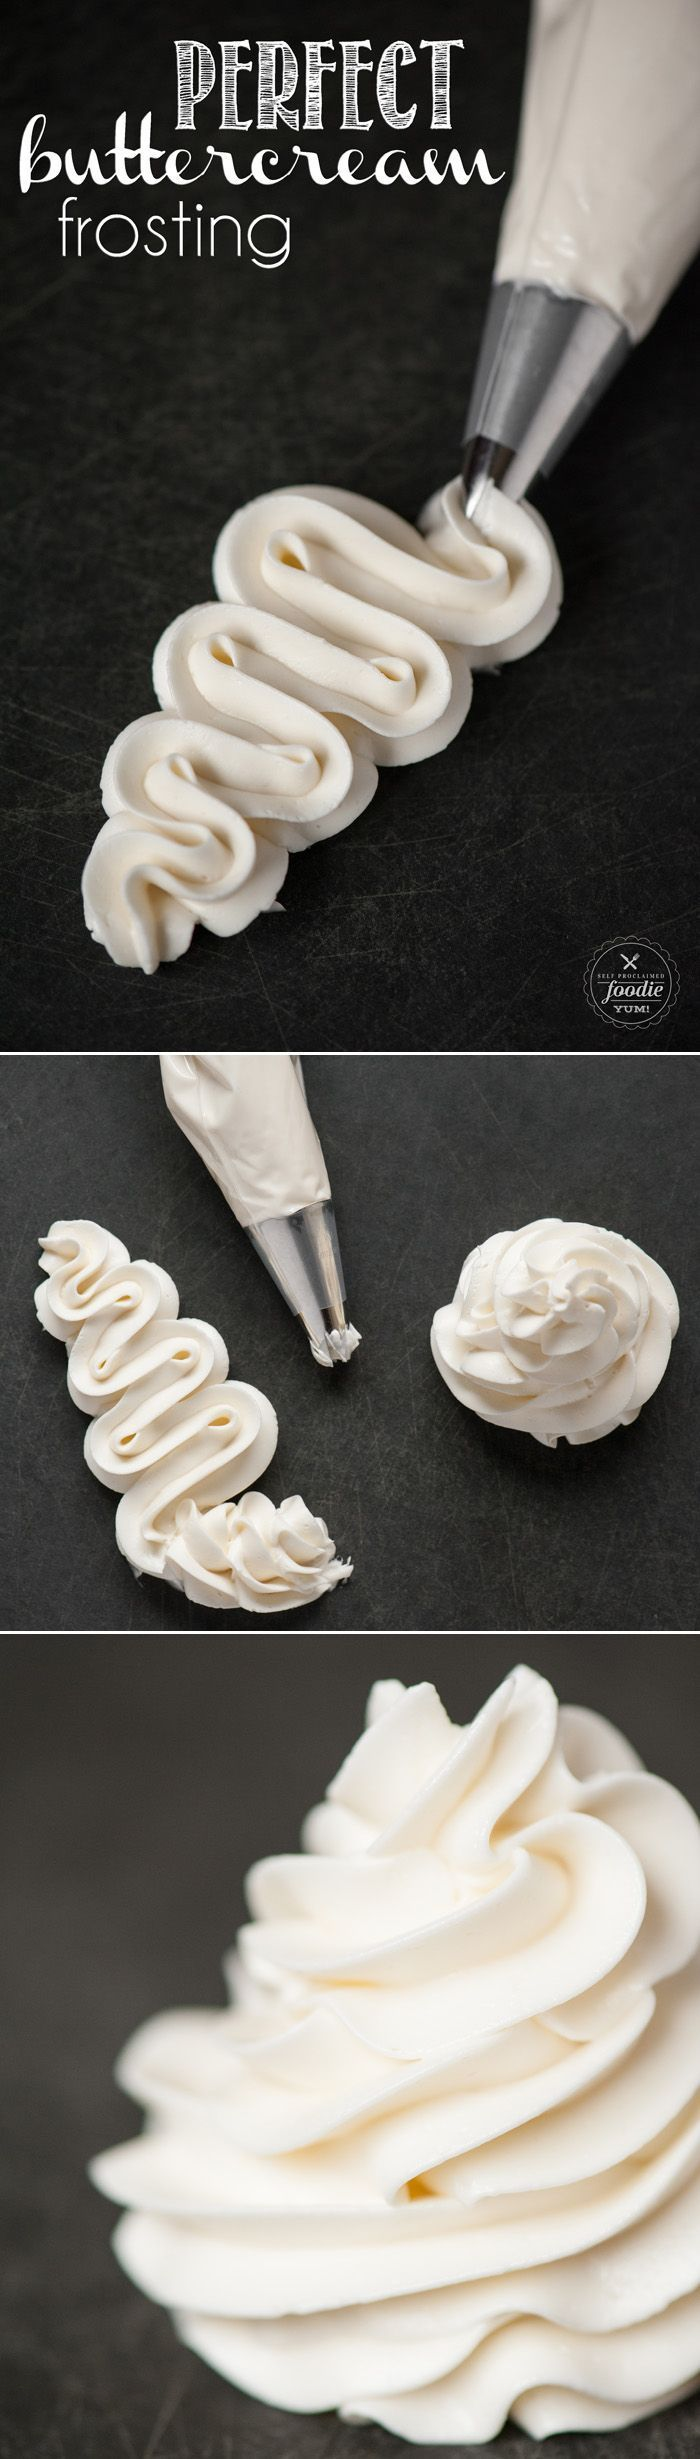 Next time you bake a cake or make cupcakes, you'll want to make this rich, smooth, and incredibly delicious traditional yet Perfect Buttercream Frosting.